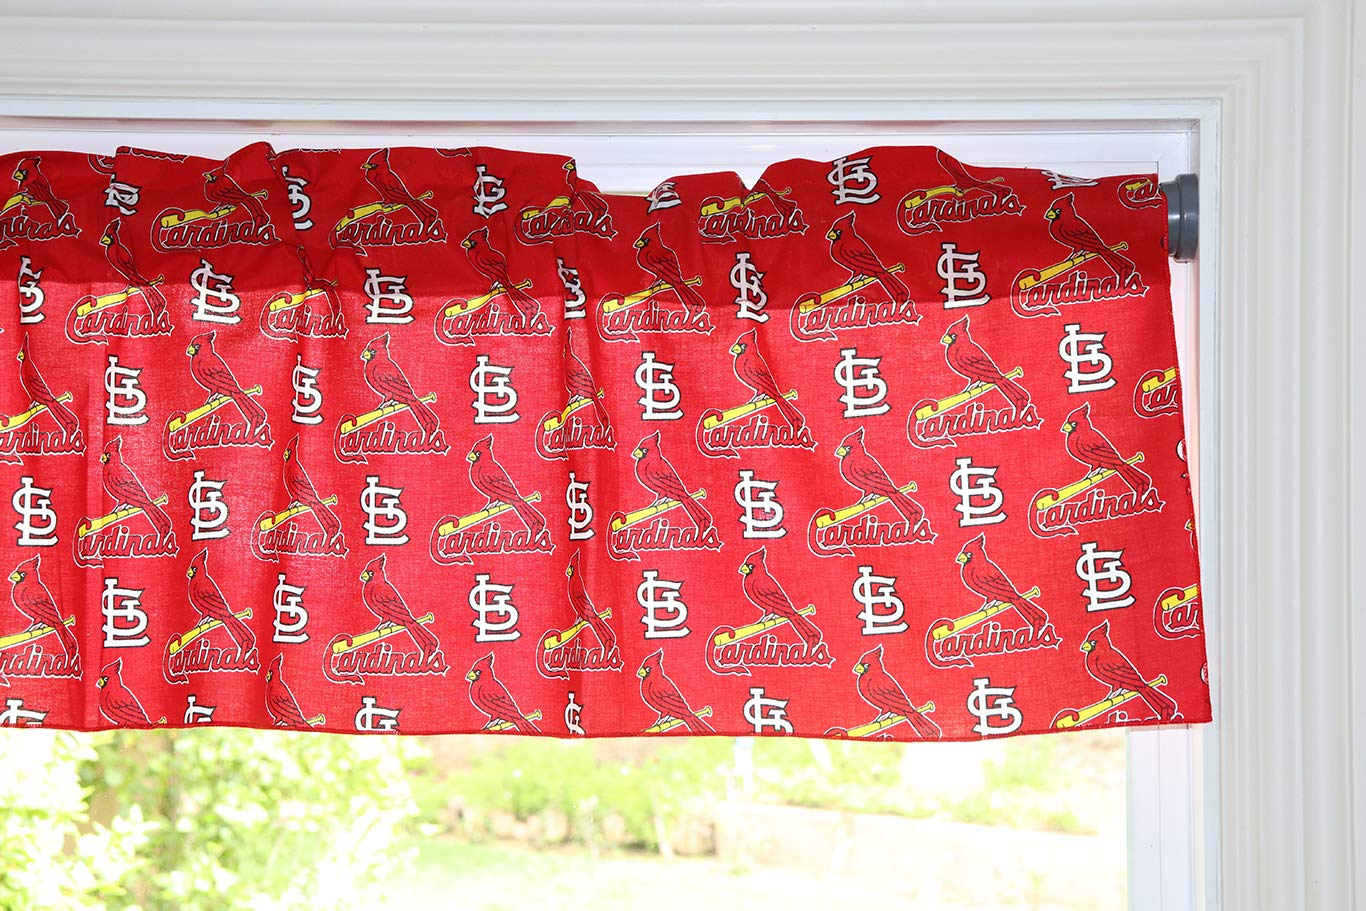 lovemyfabric Baseball Cotton Window Valance 100% Cotton Print MLB Sports Team St. Louis Cardinals Events Kitchen Dining Room Bedroom Window Decor (58'' Wide) (20'' Tall, Red) by lovemyfabric